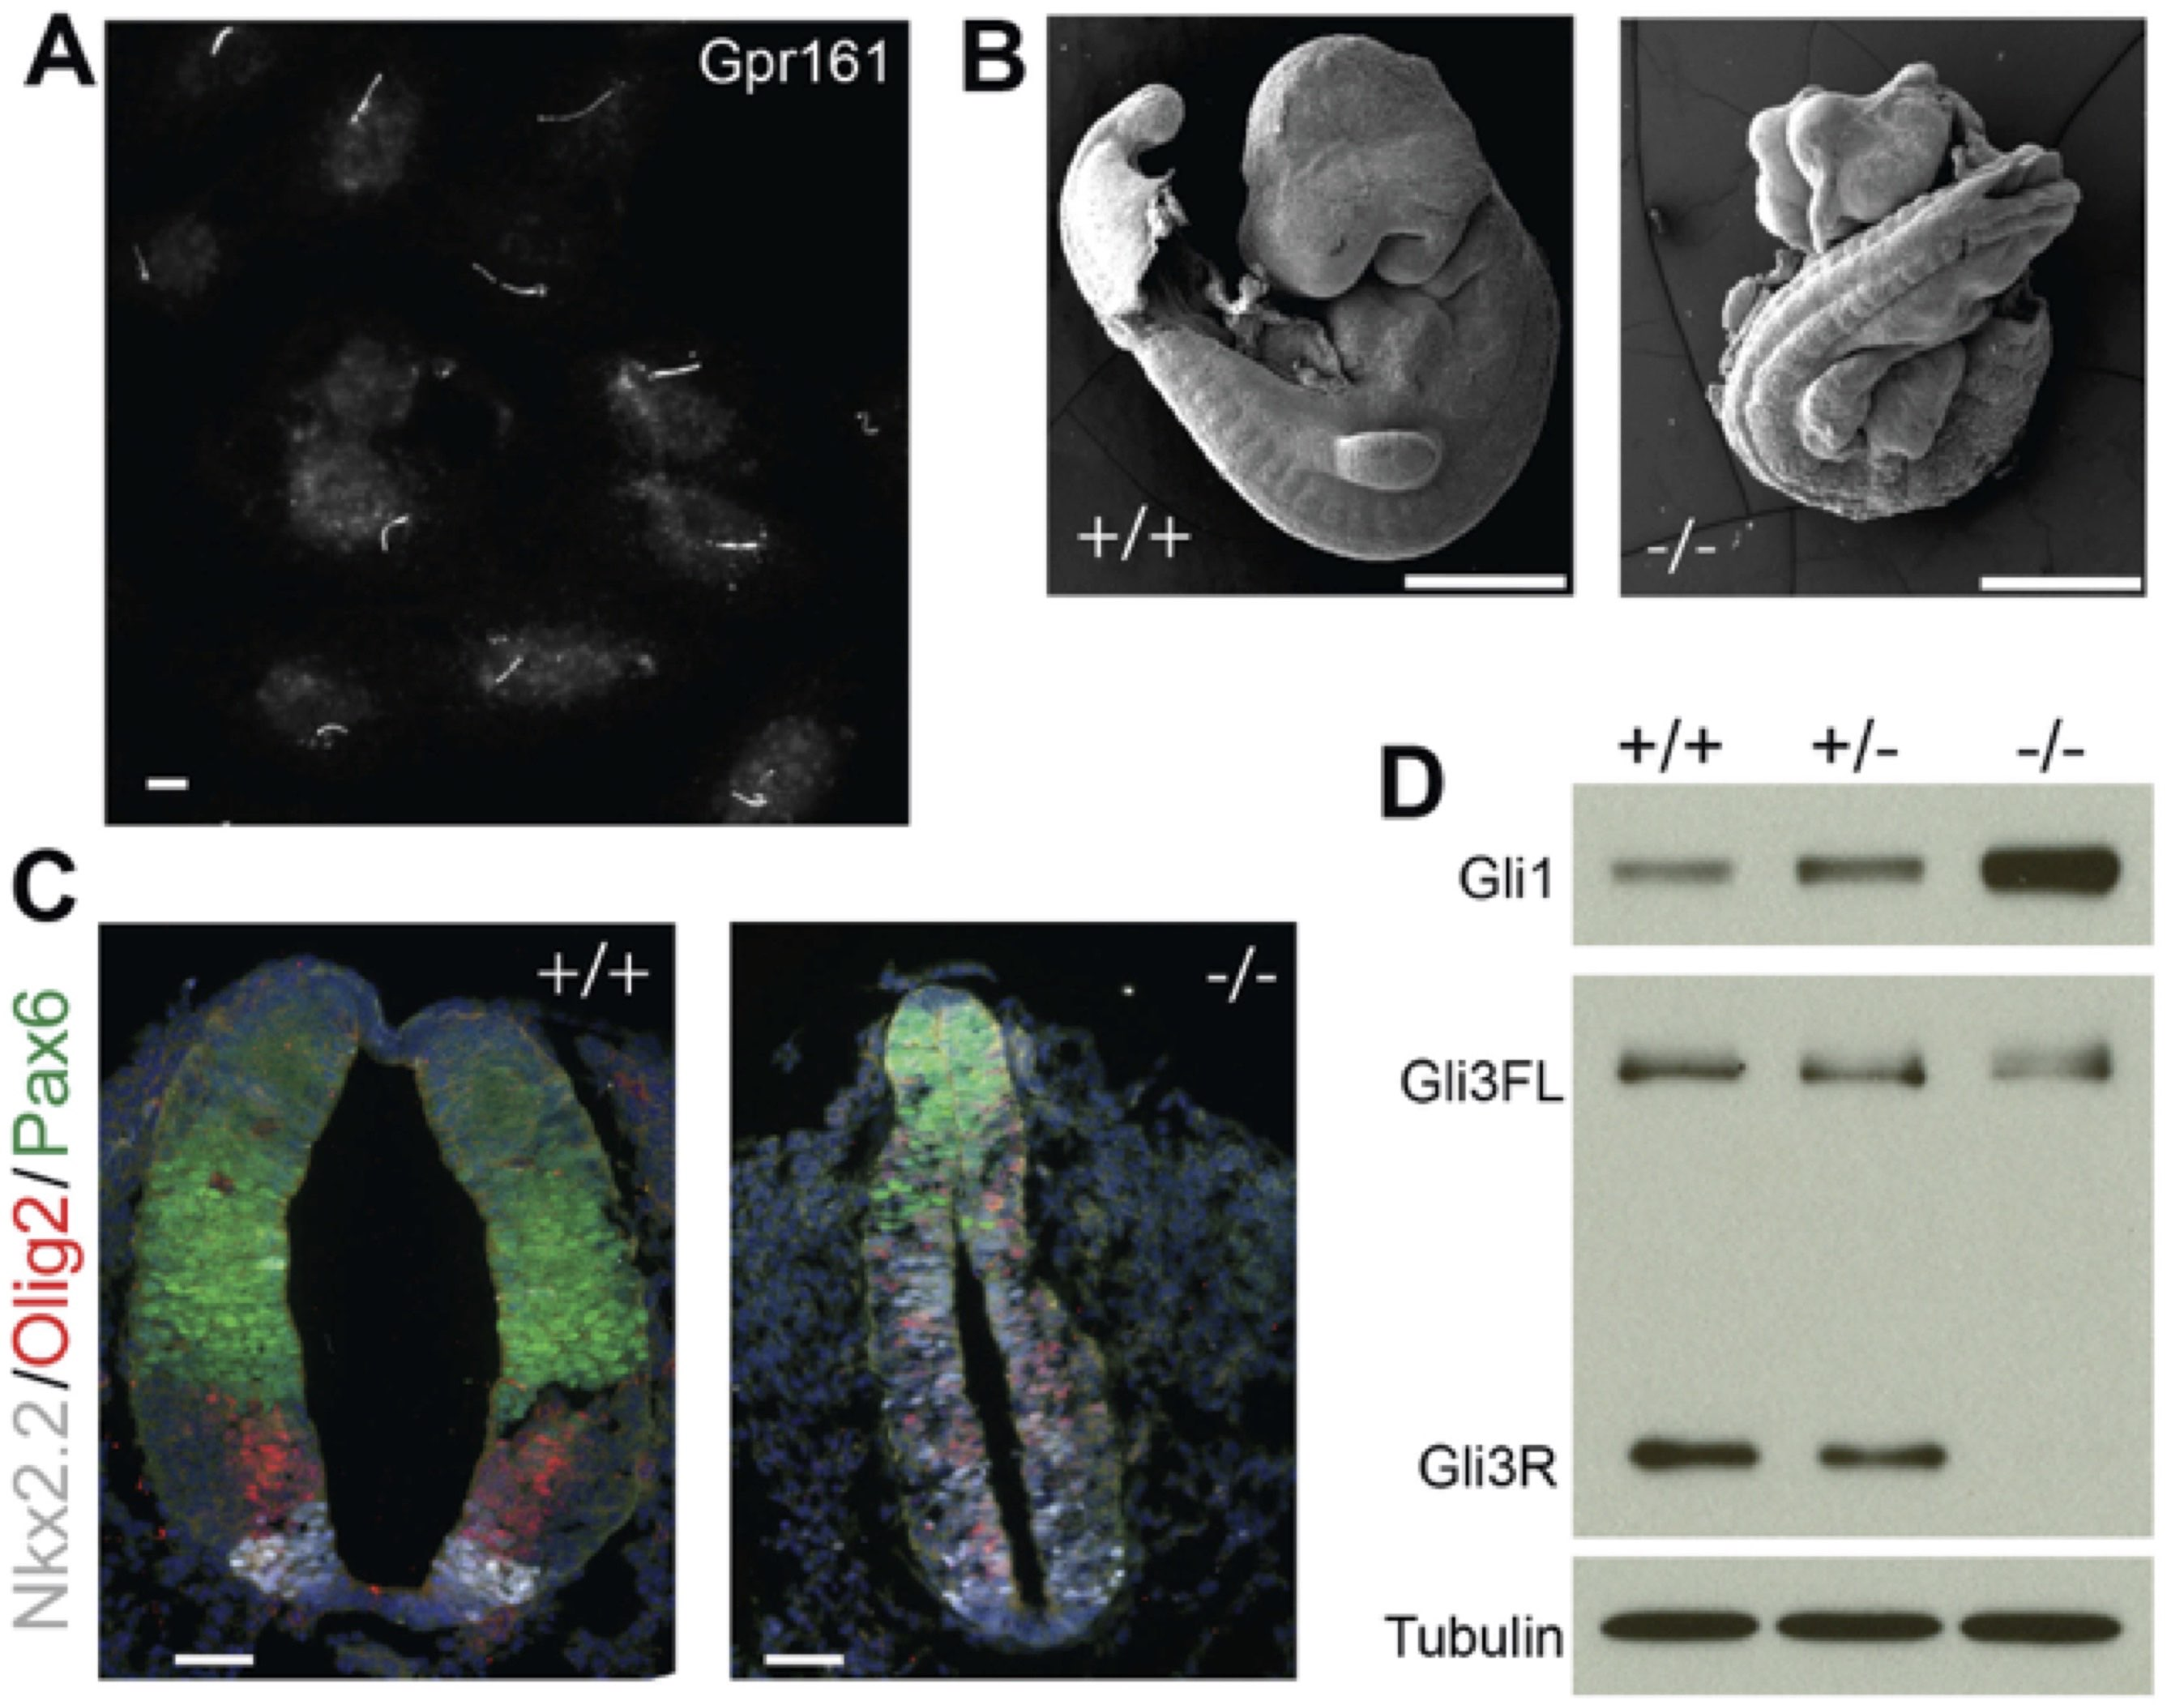 Gpr161 is a critical negative regulator of Shh signaling in the mouse neural tube. (A) Endogenous Gpr161 in IMCD3 cilia. (B) E9.5 embryos from the Gpr161 knock out (-/-) shows widespread defects compared to wild-type (+/+). (C) Ventralized neural tube in the E9.5 knock out embryos. (D) Gli1 protein levels and Gli3 processing defects in E8.5 embryo lysates.